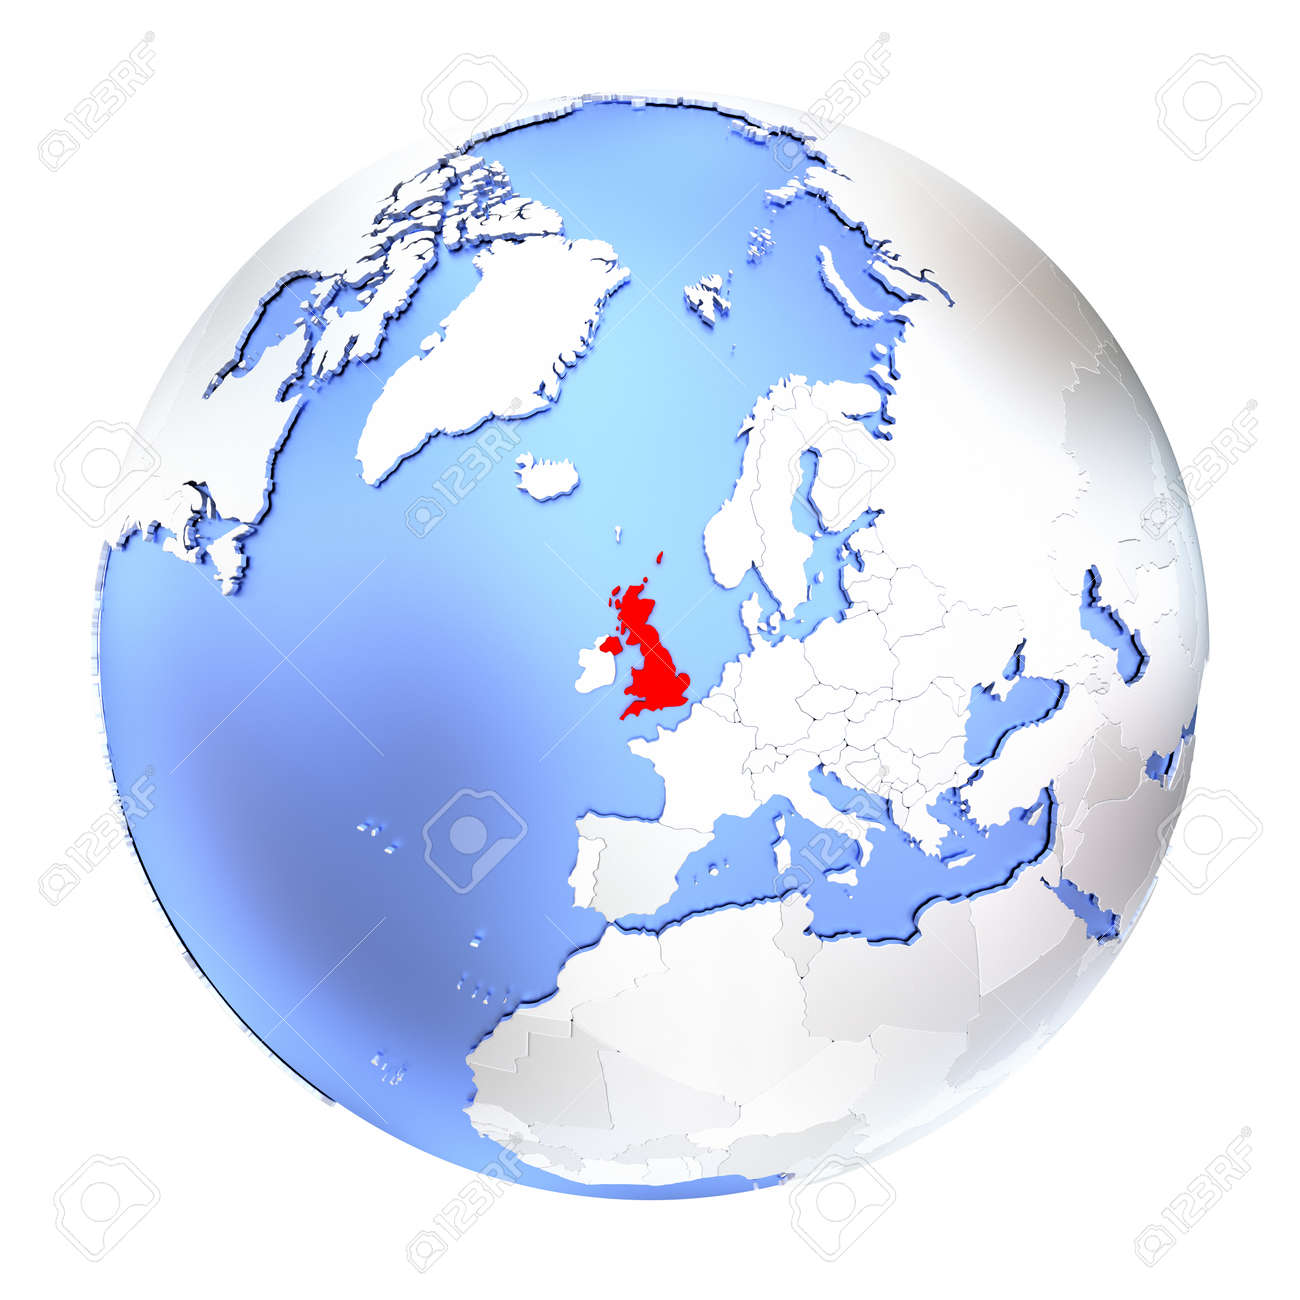 Map Of United Kingdom On Metallic Globe 3d Illustration Isolated Stock Photo Picture And Royalty Free Image Image 73433046